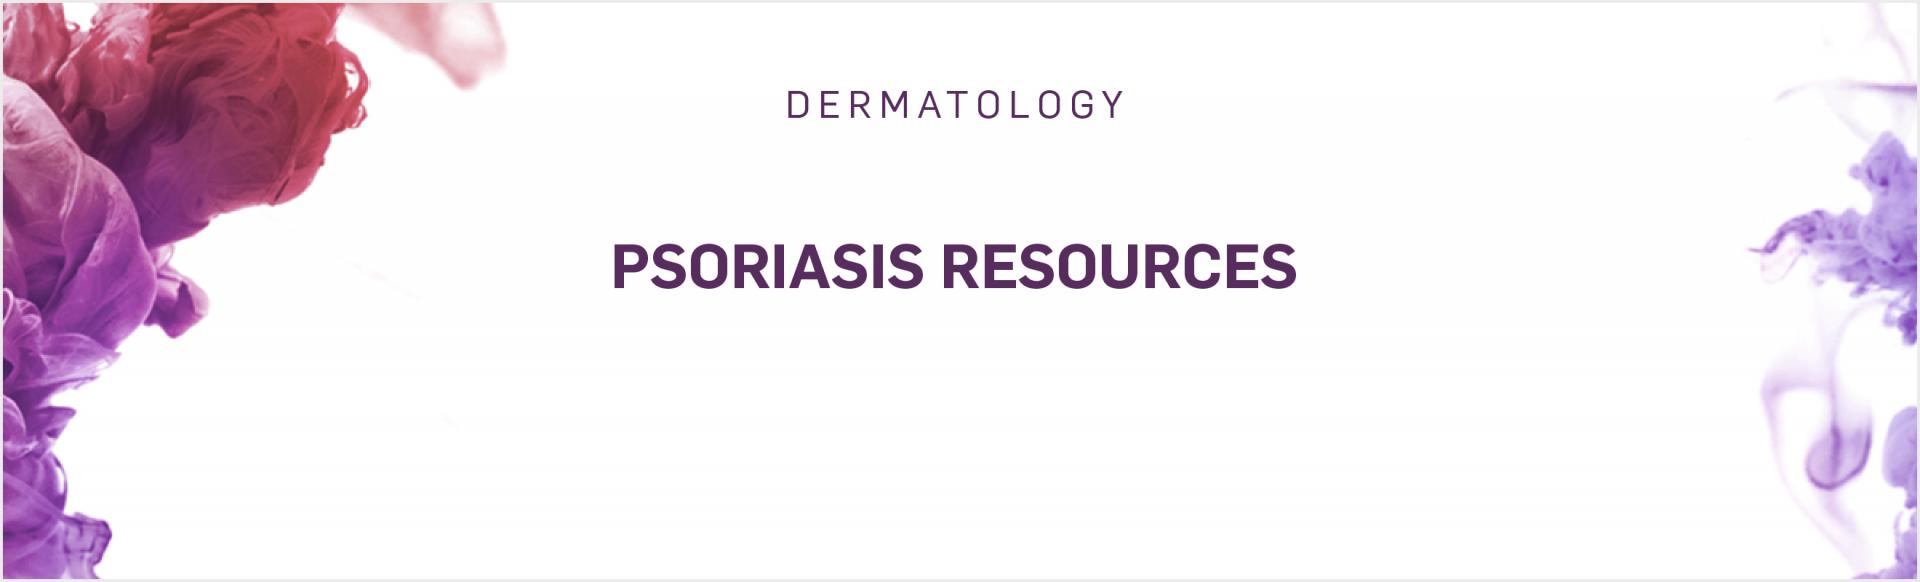 Top banner. Psoriasis resources for healthcare professionals